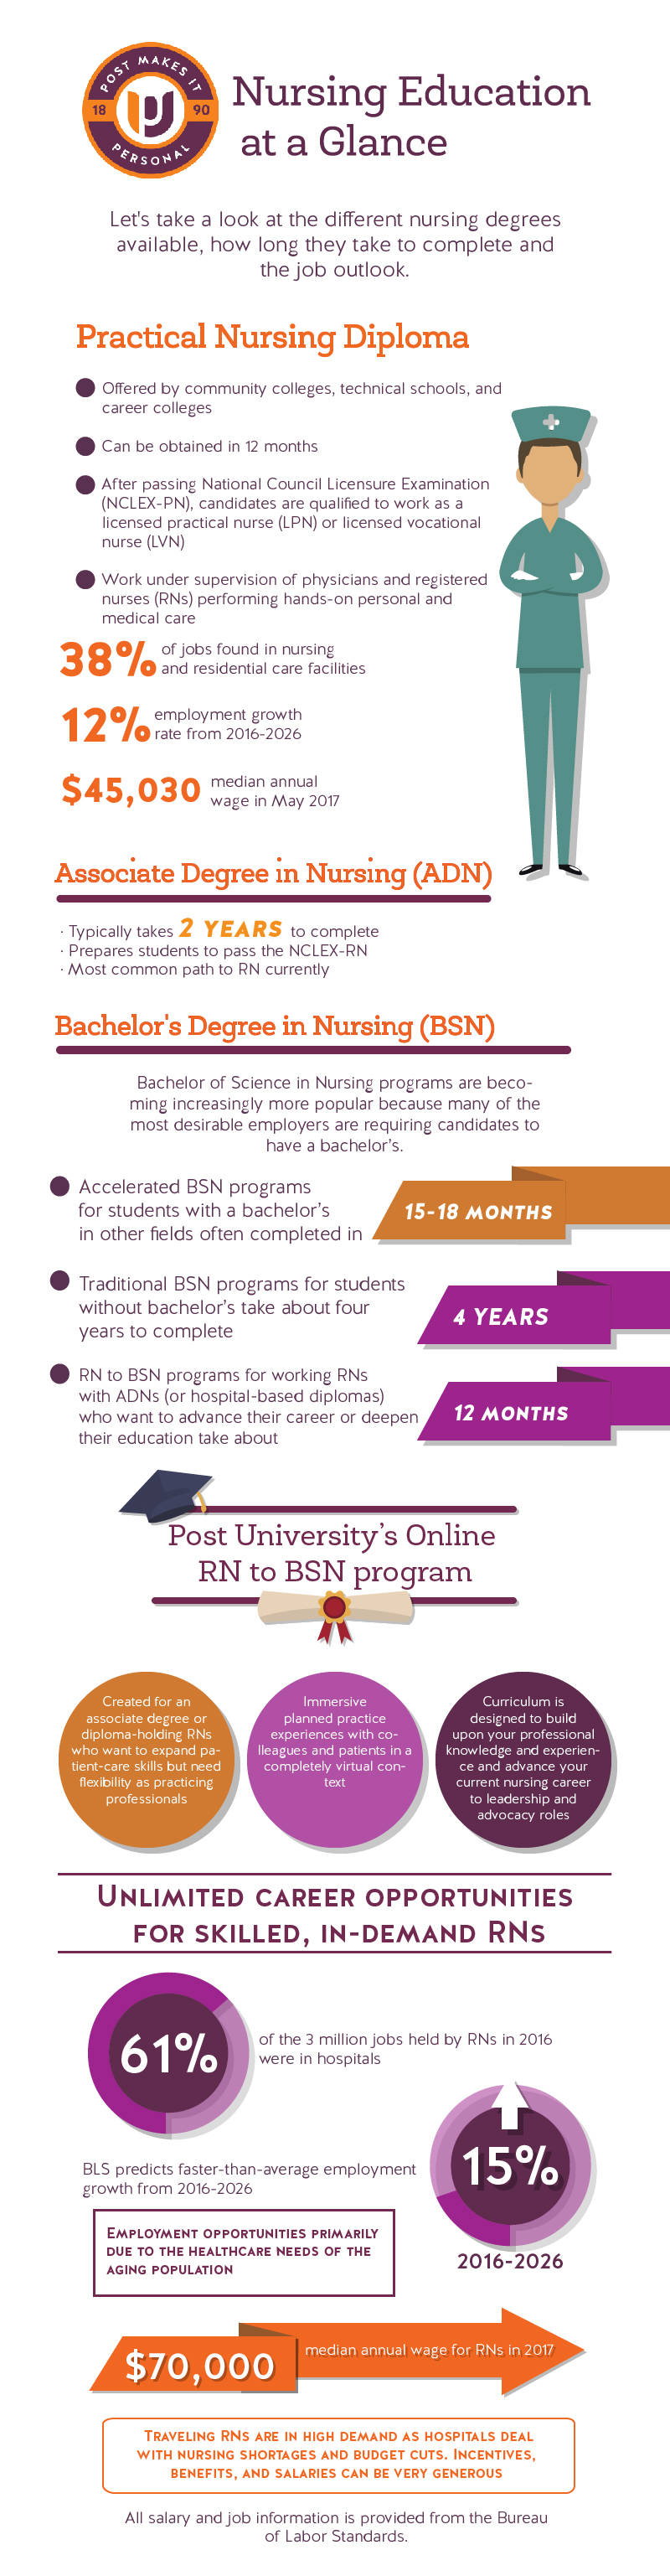 Infographic for Nursing degress